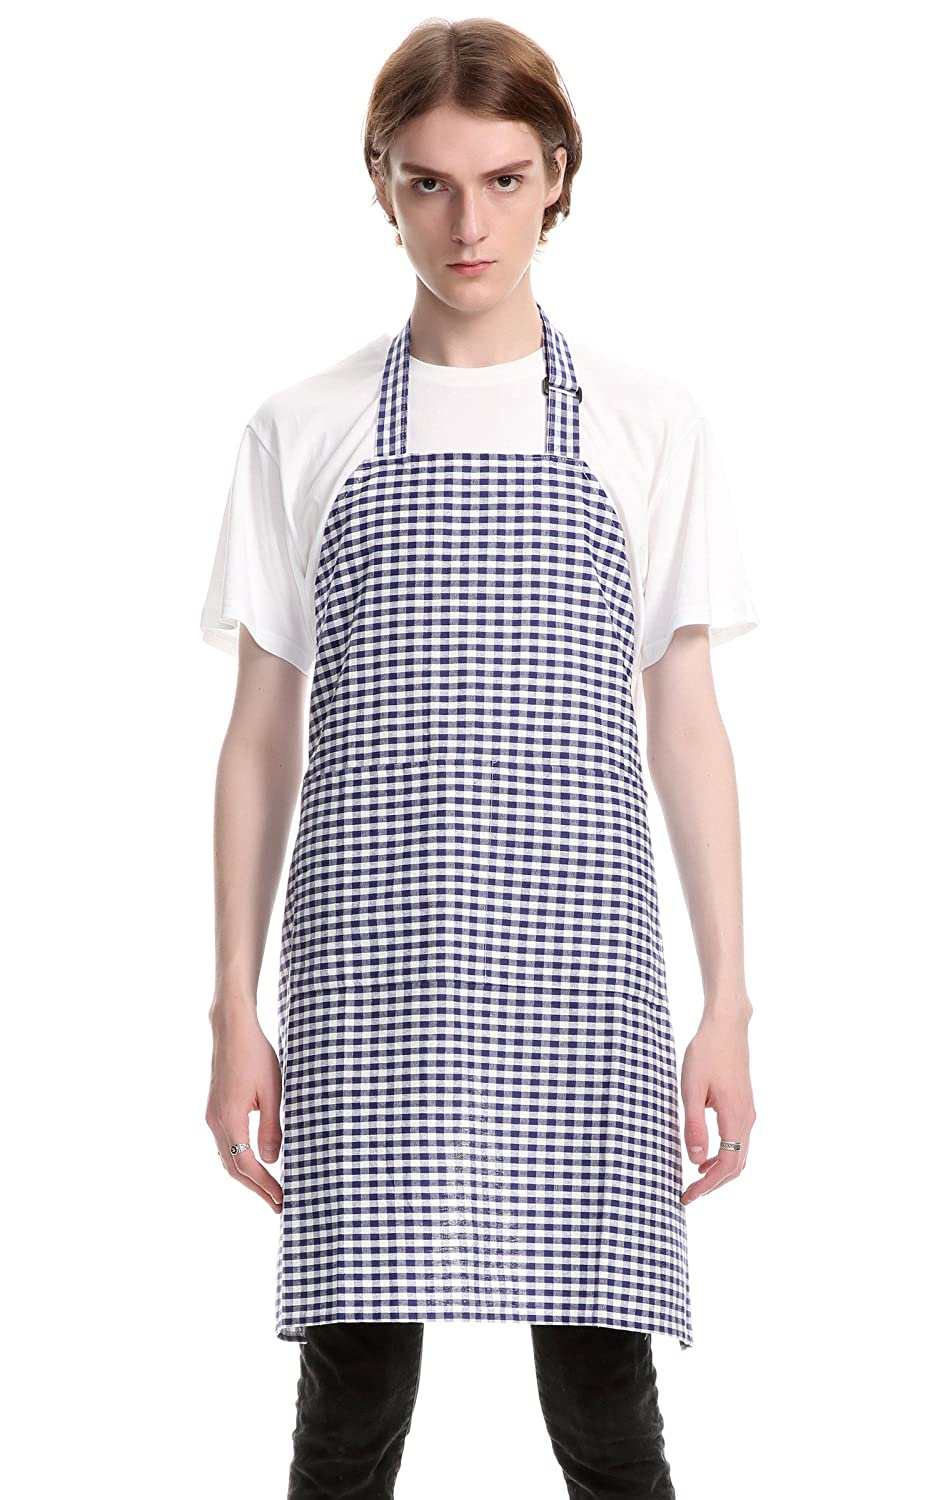 Vintage Gingham Kitchen Aprons Chef Bib Canvas Aprons Christmas Holiday Home Decorative 100% Pure Cotton Aprons in Large Size with Pockets with Pockets by Jennice House(Blue) COMINHKPR105490